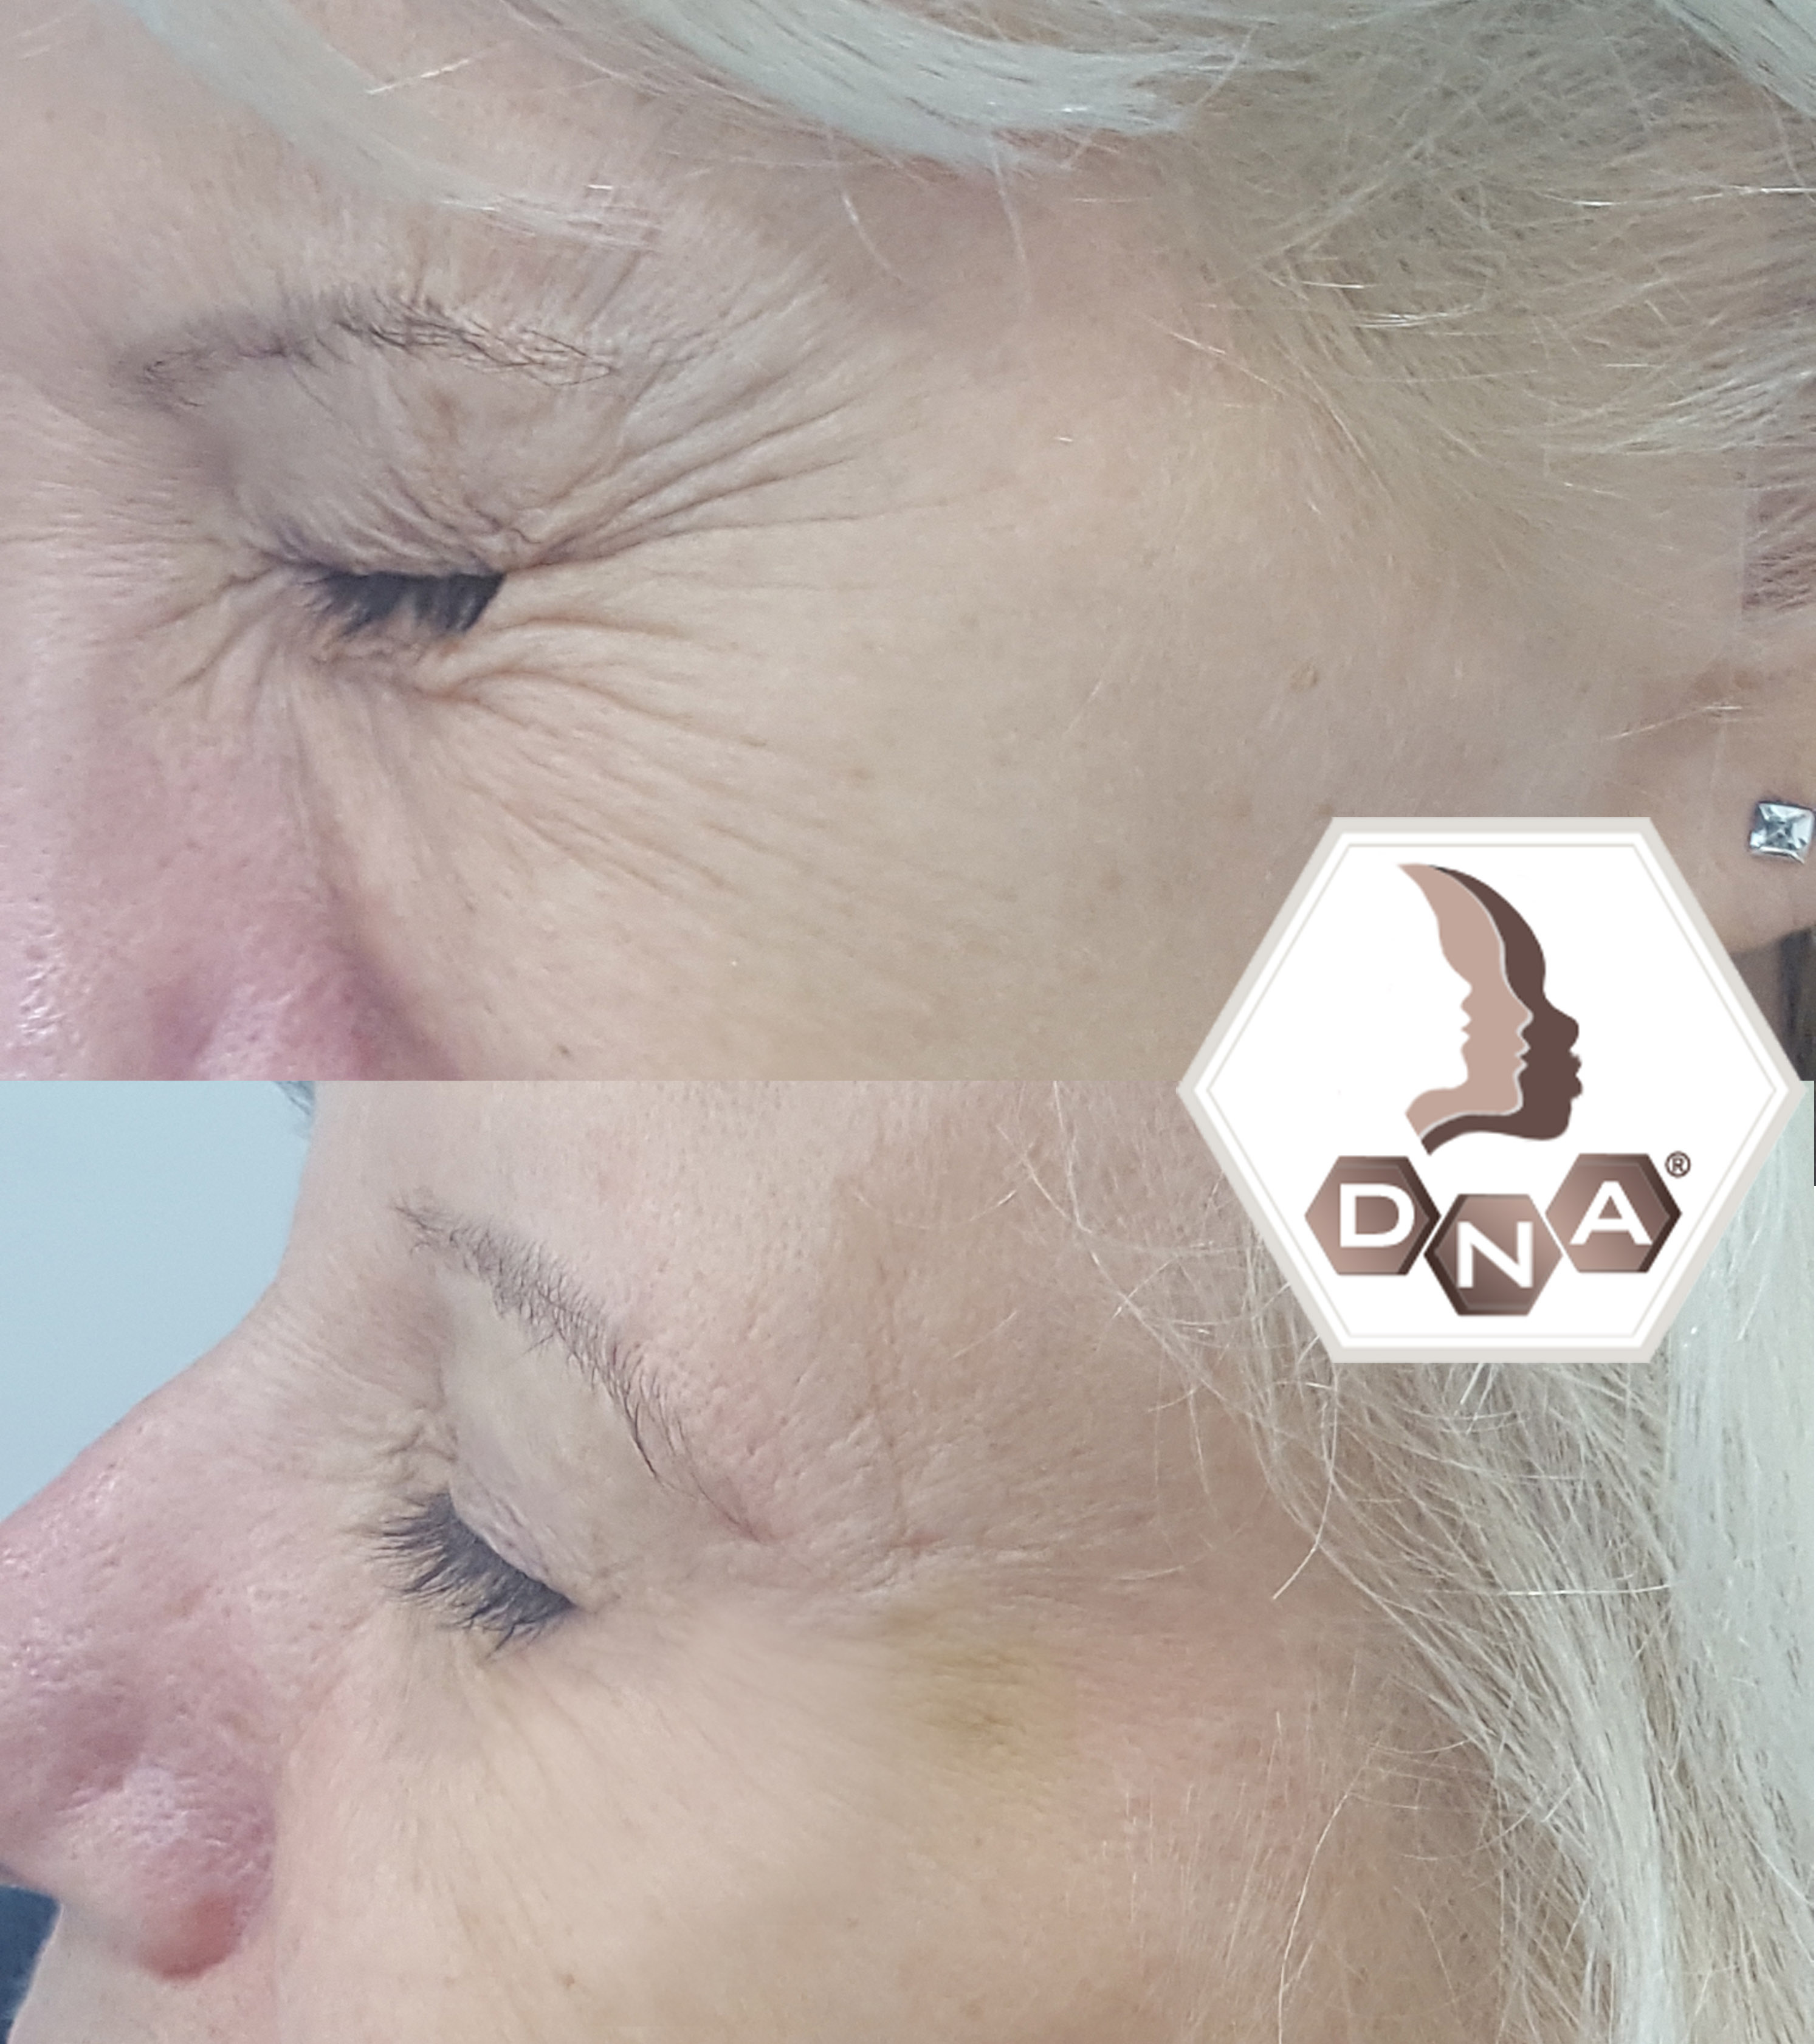 Botox (anti-wrinkle injections) and Dermal Fillers cheek, Lip Enhancements Facelift